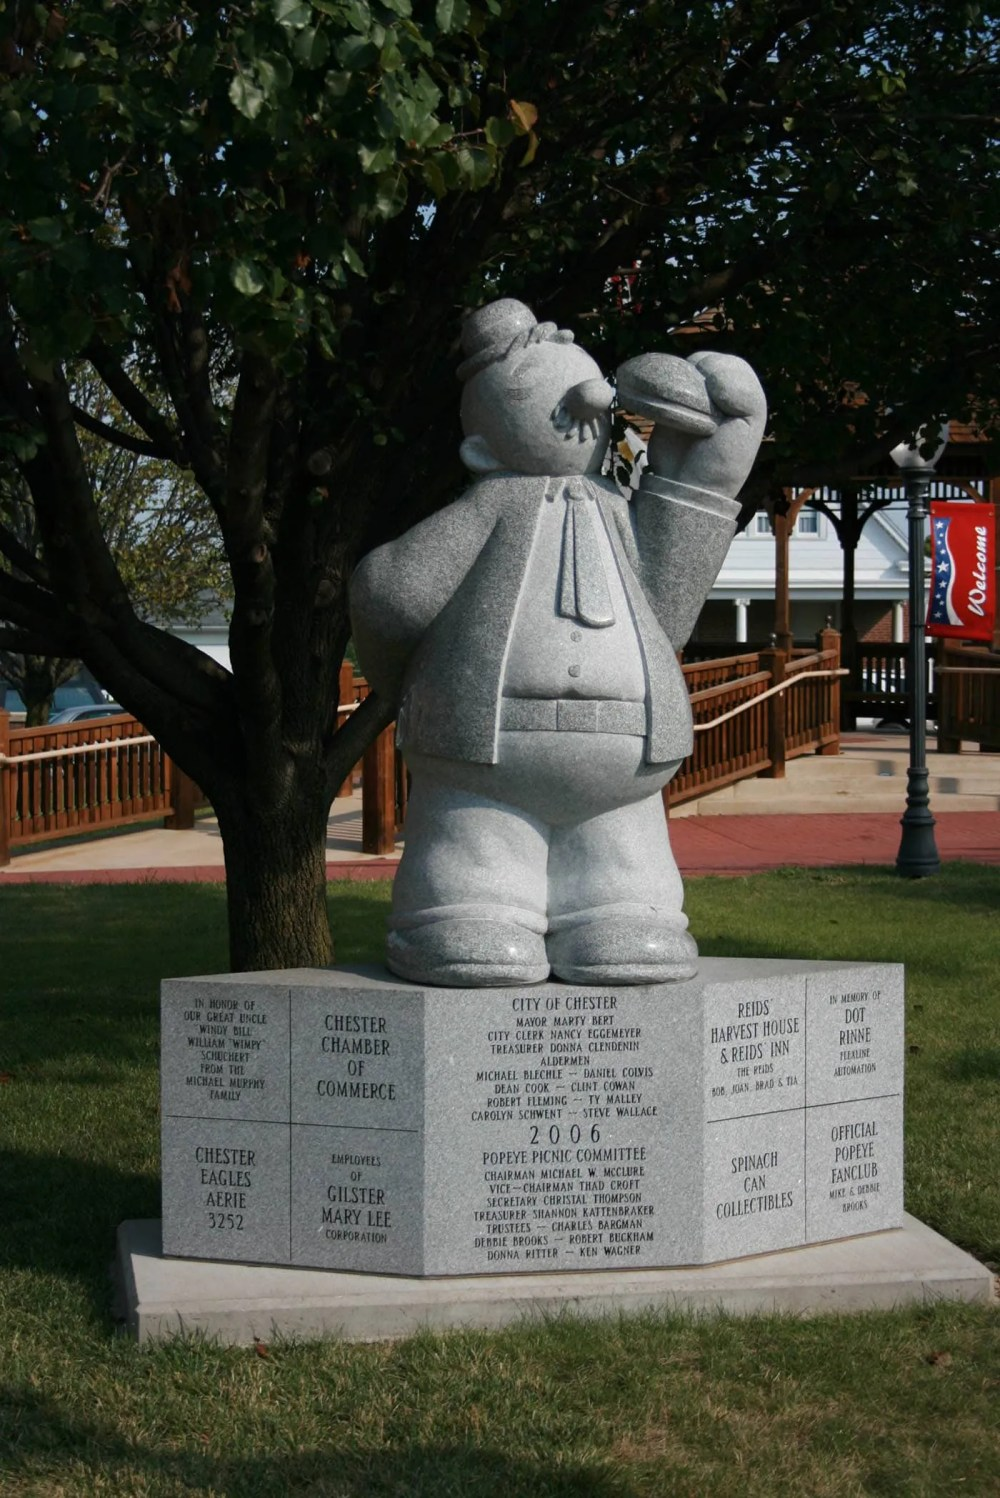 Popeye's Wimpy Statue in Chester, Illinois